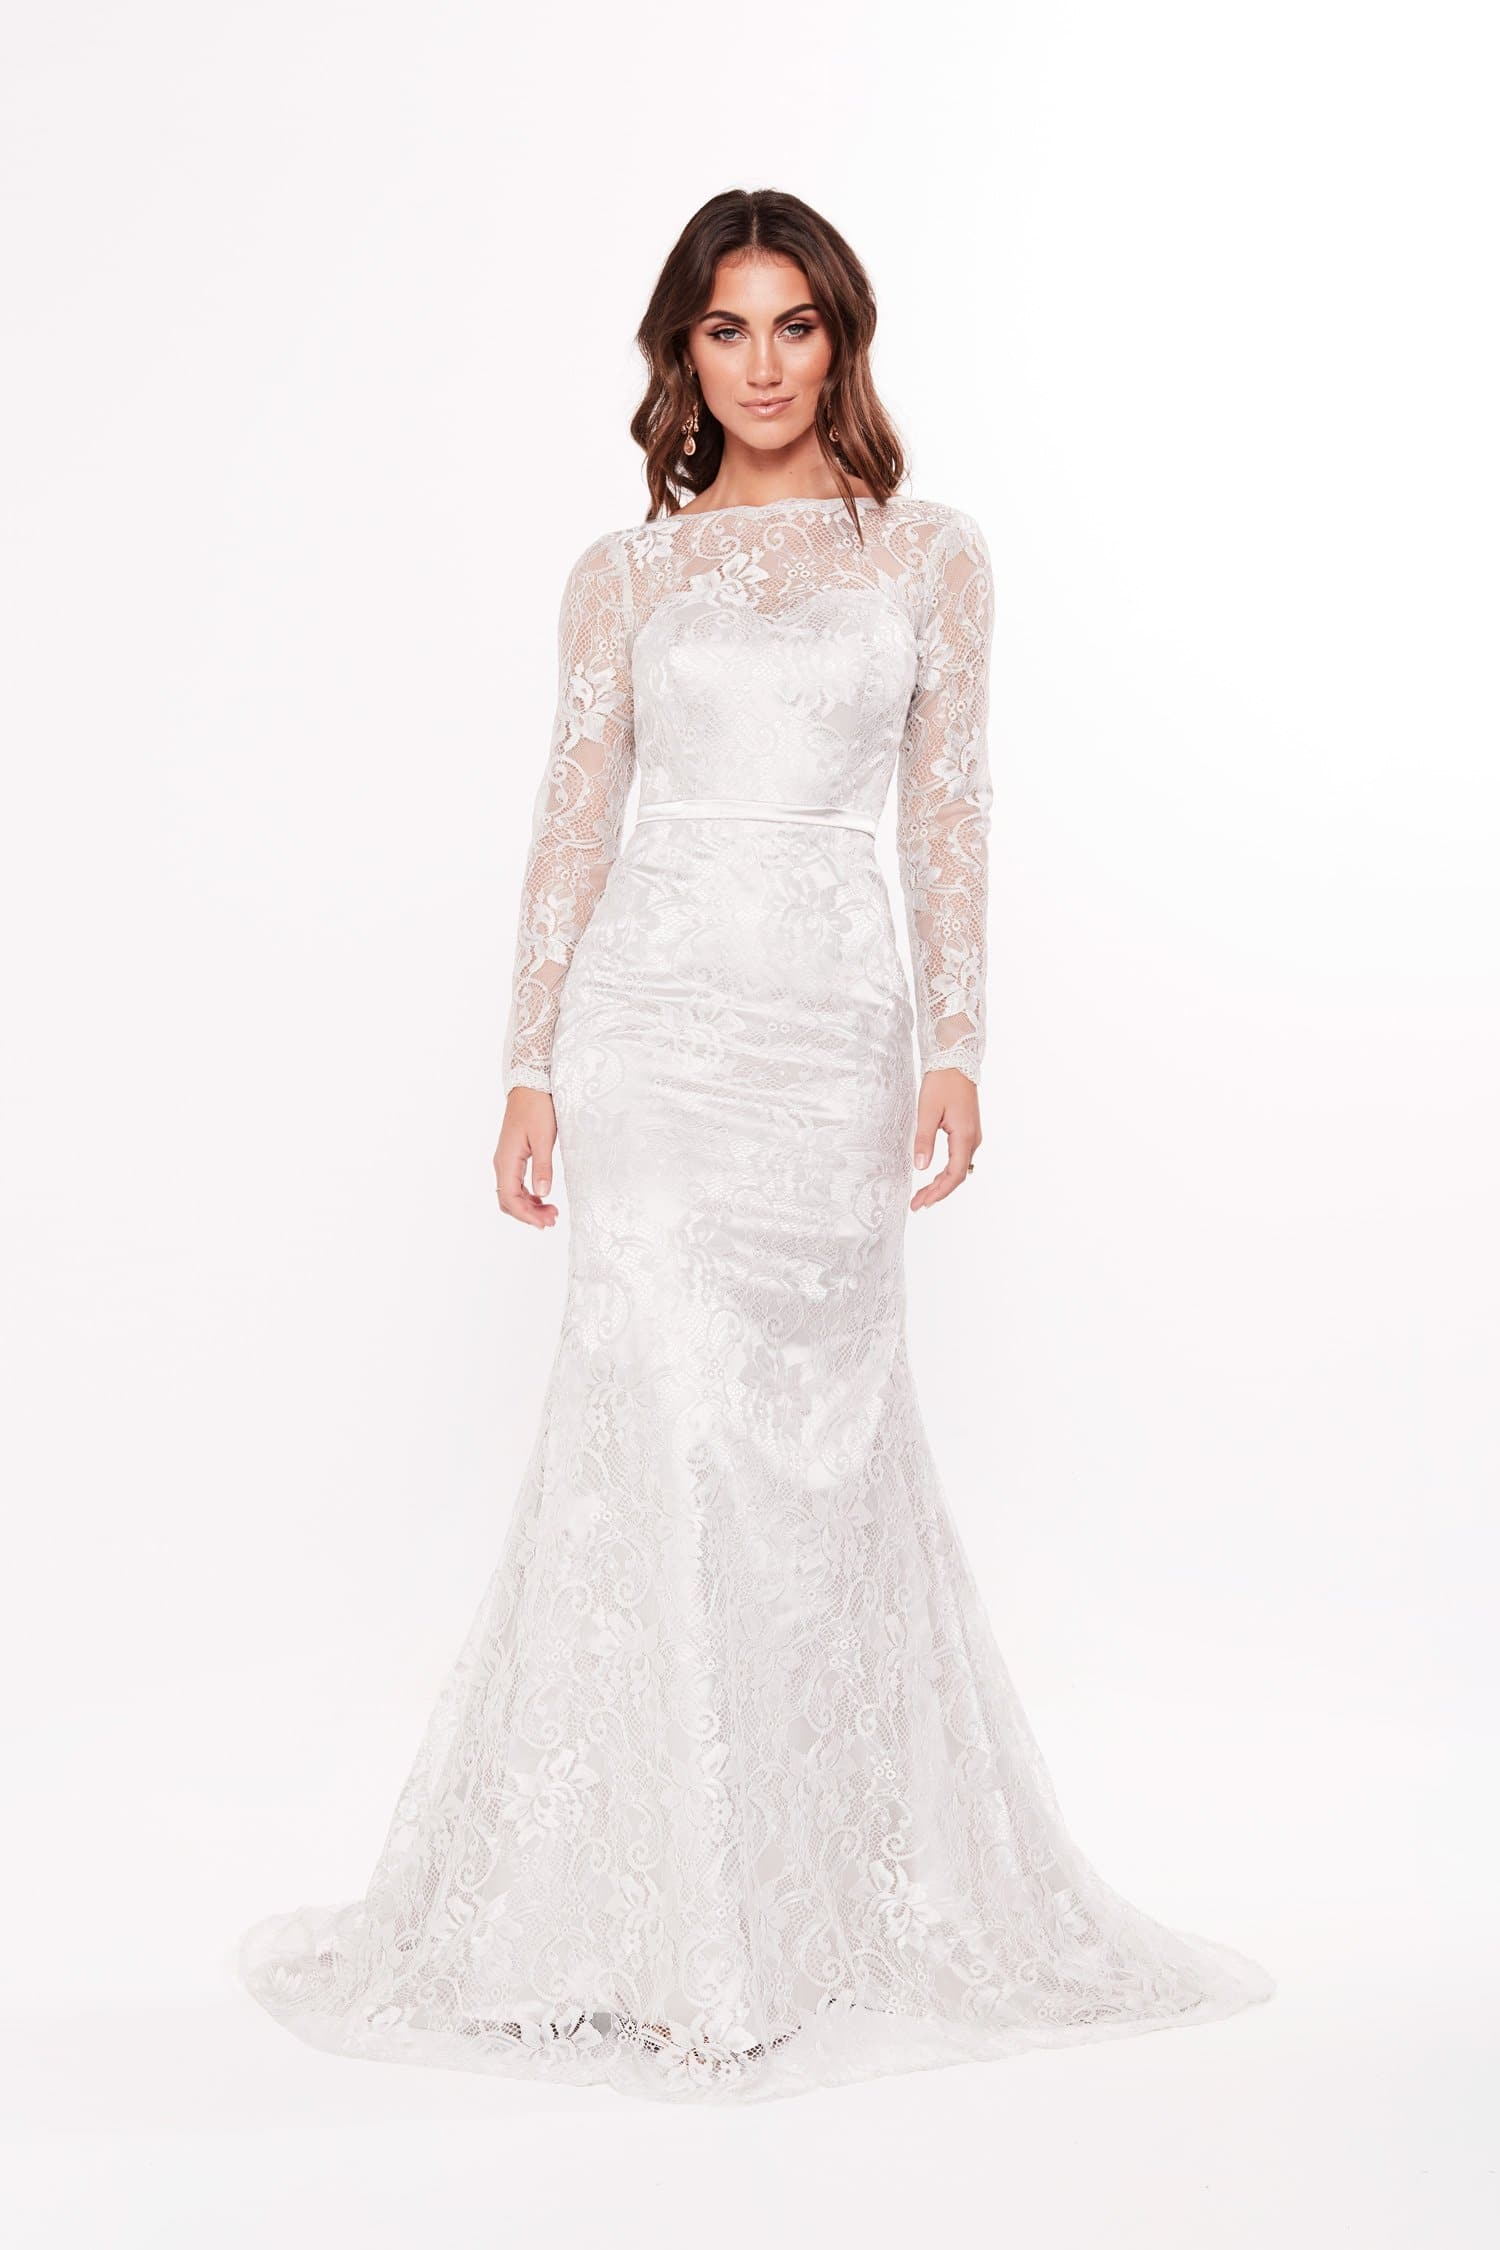 A&N Yamel - Silver Lace Gown with Long Sleeves and High Neckline